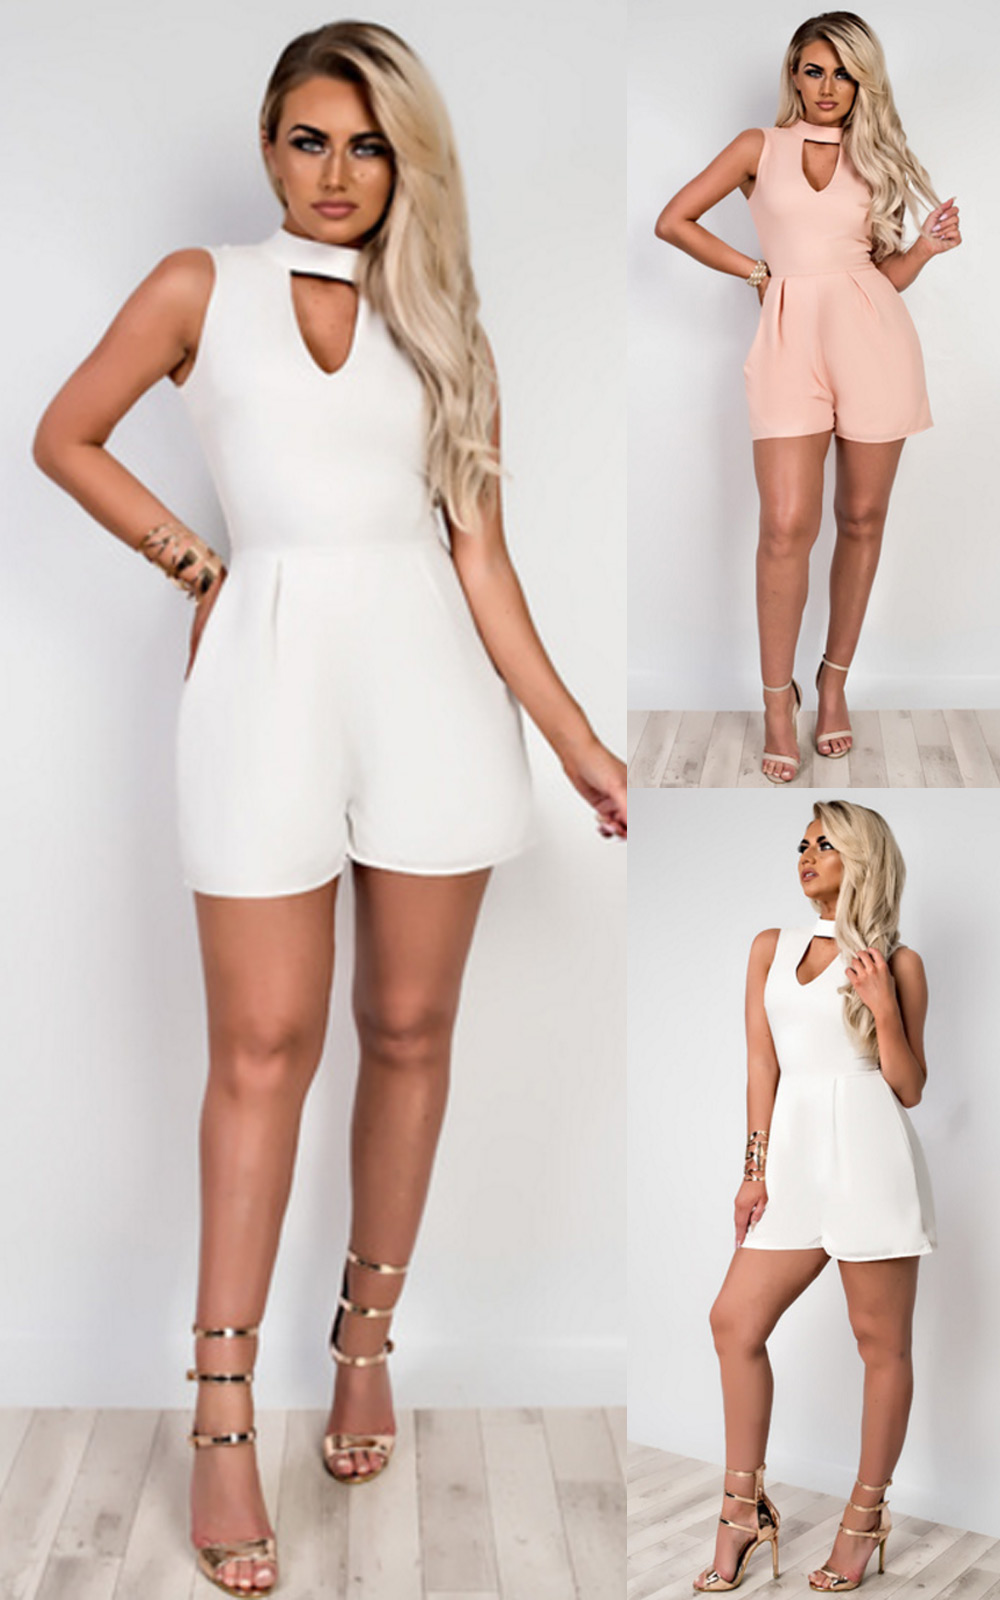 Women039s Ladies Stunning Glam Cut Out Playsuit - Glasgow, United Kingdom - If you change your mind about a product or find the size isn't quite right, you can return it to us. We are happy to accept returns that are received within 30 days of delivery for full priced items or 7 days of delivery for all  - Glasgow, United Kingdom